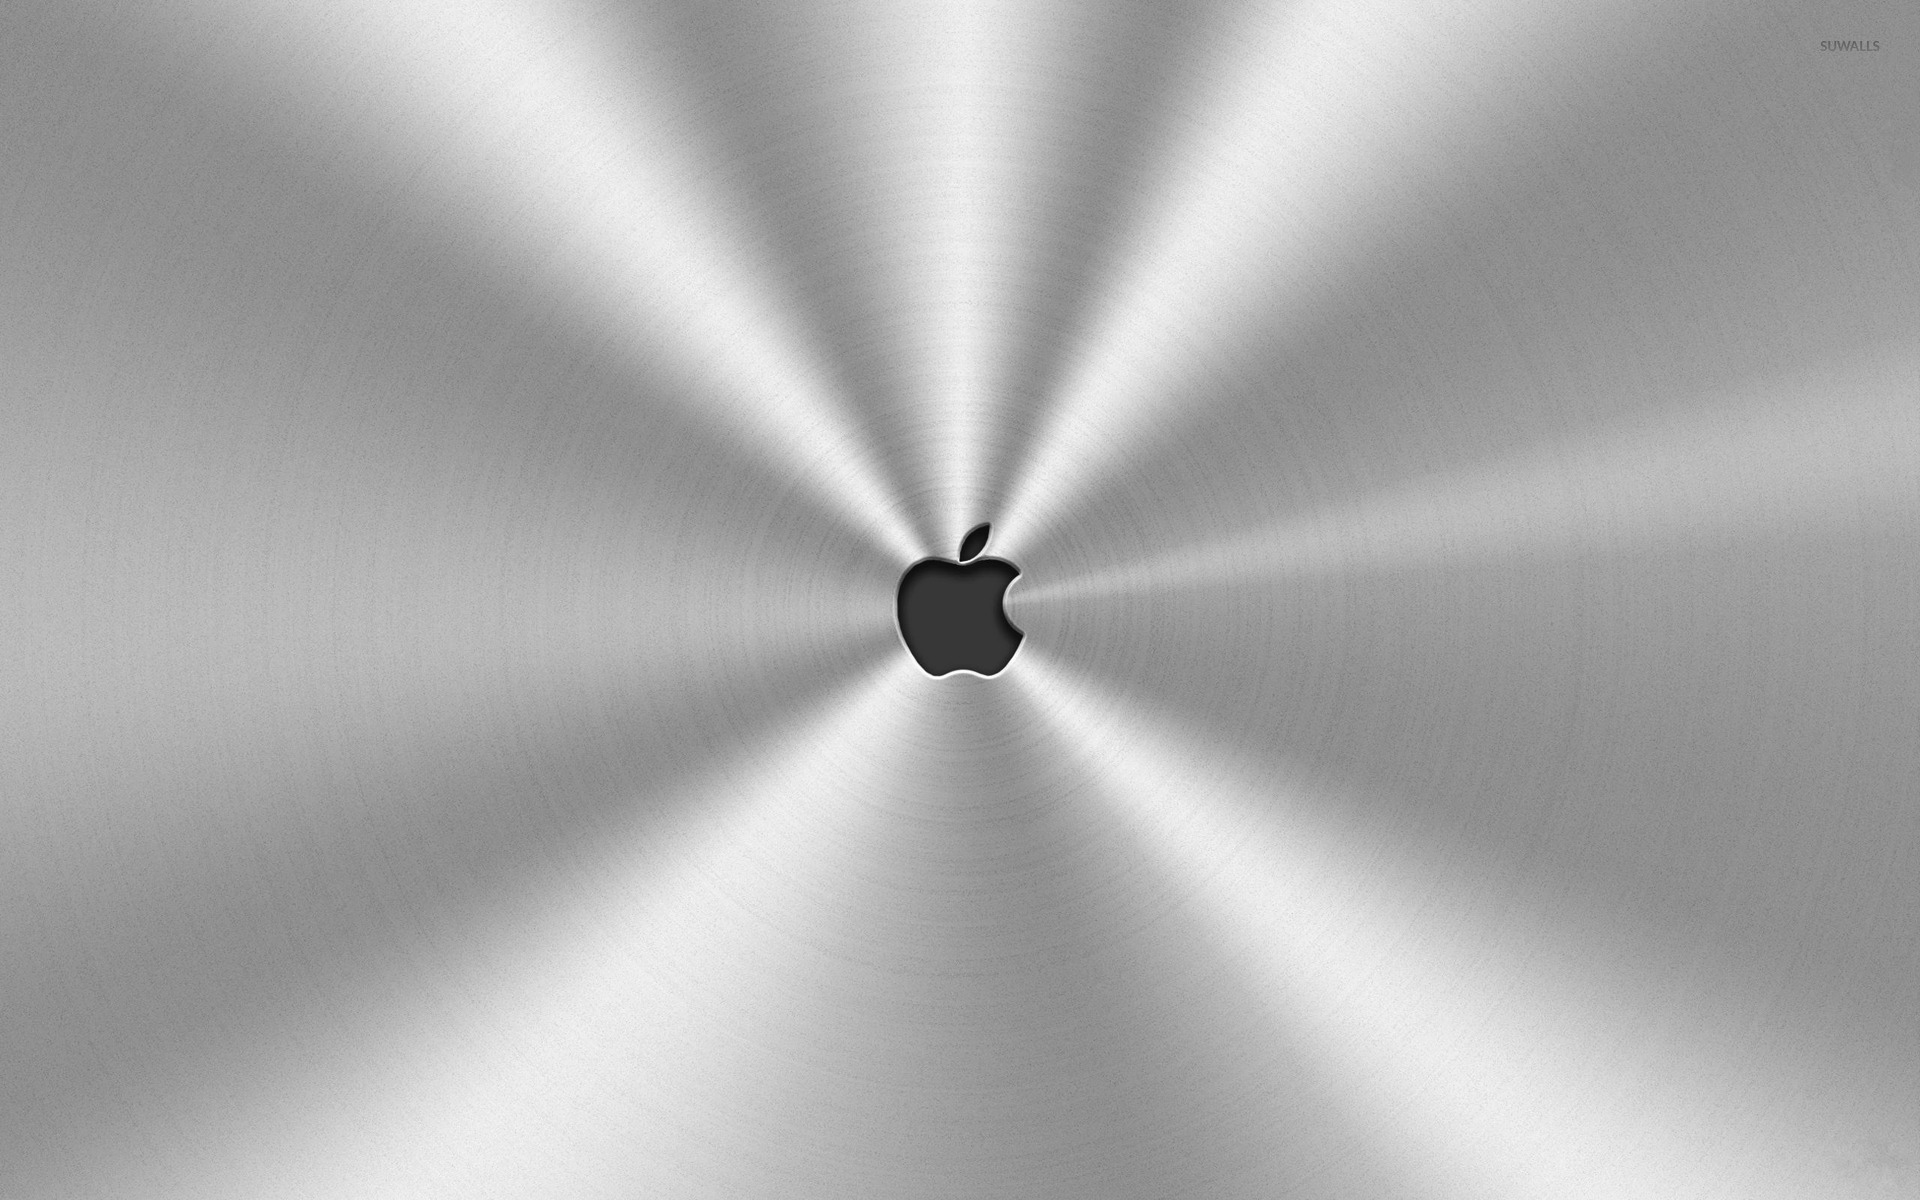 Apple Logo Surrounded By Metal Wallpaper